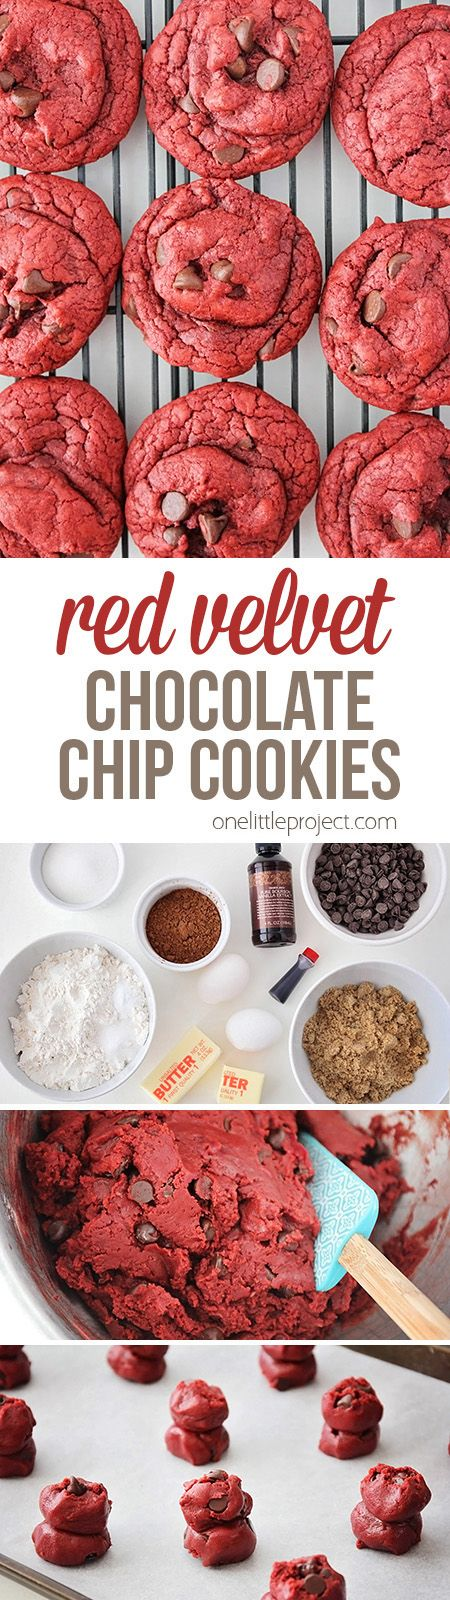 These gorgeous and decadent red velvet chocolate chip cookies are so simple and easy to make! The perfect treat for any chocolate lover!